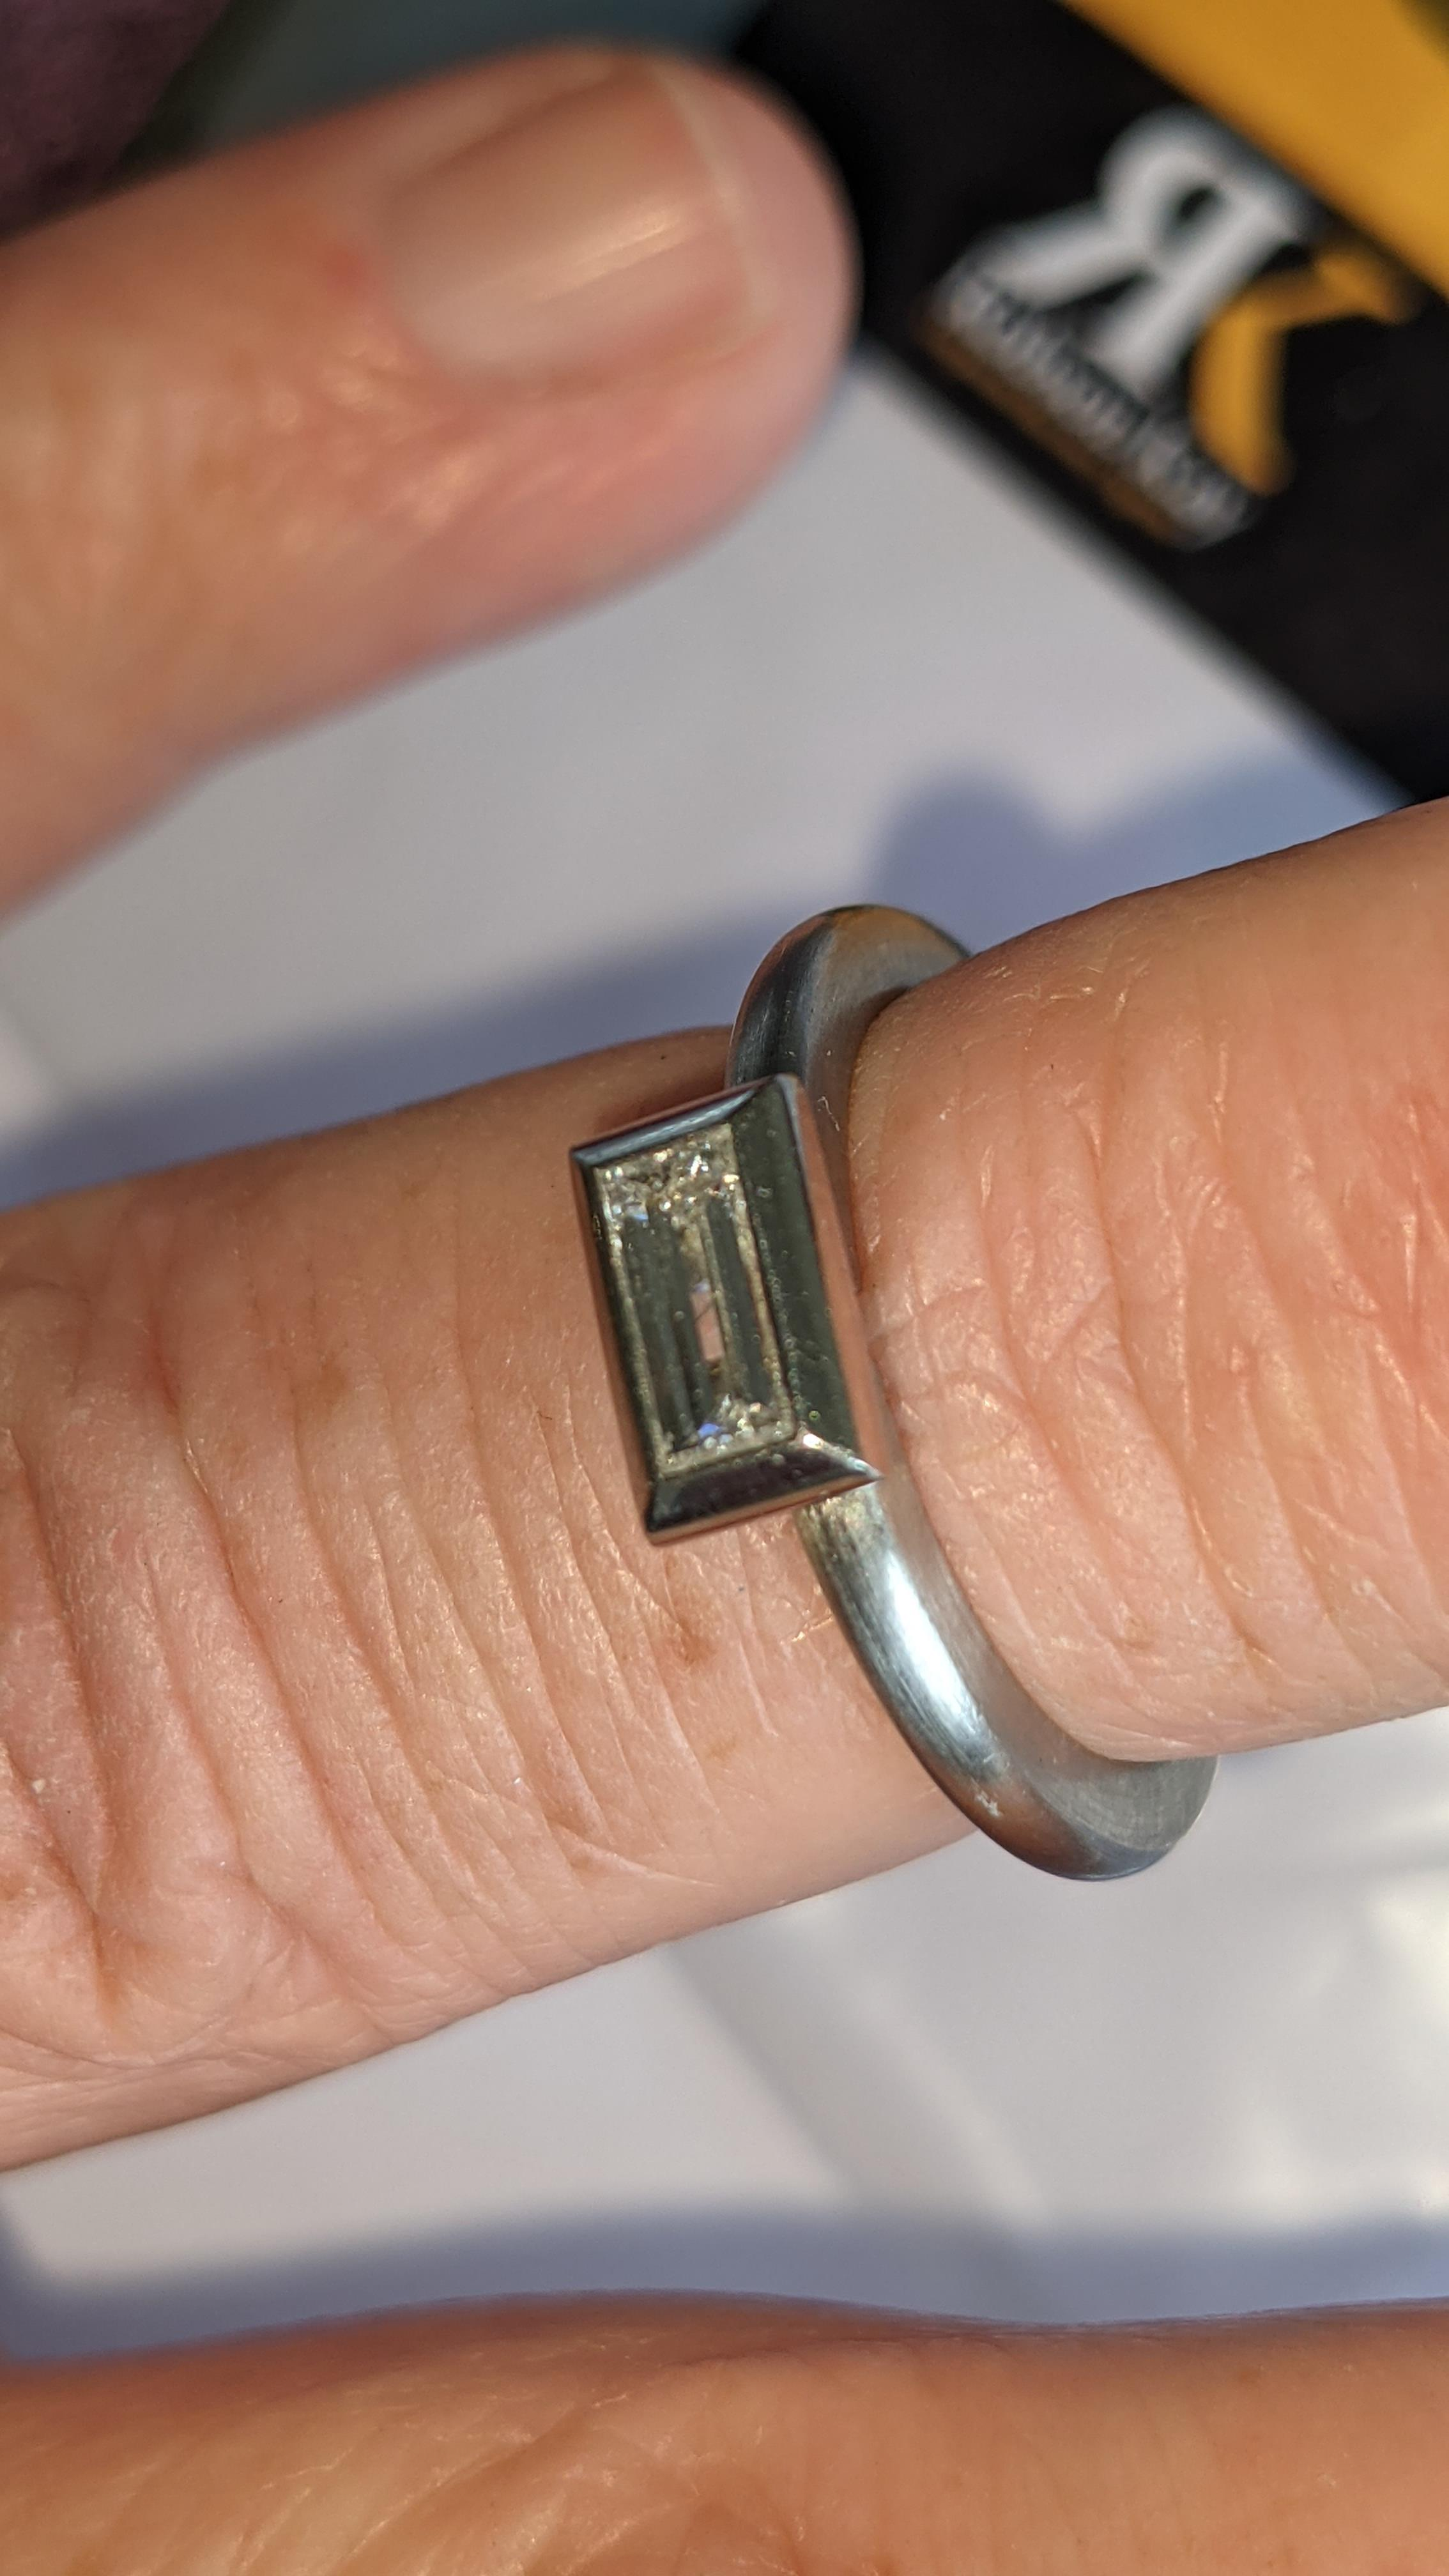 Modern platinum 950 & diamond ring with 0.42ct centrally mounted stone. RRP £4,677 - Image 17 of 18